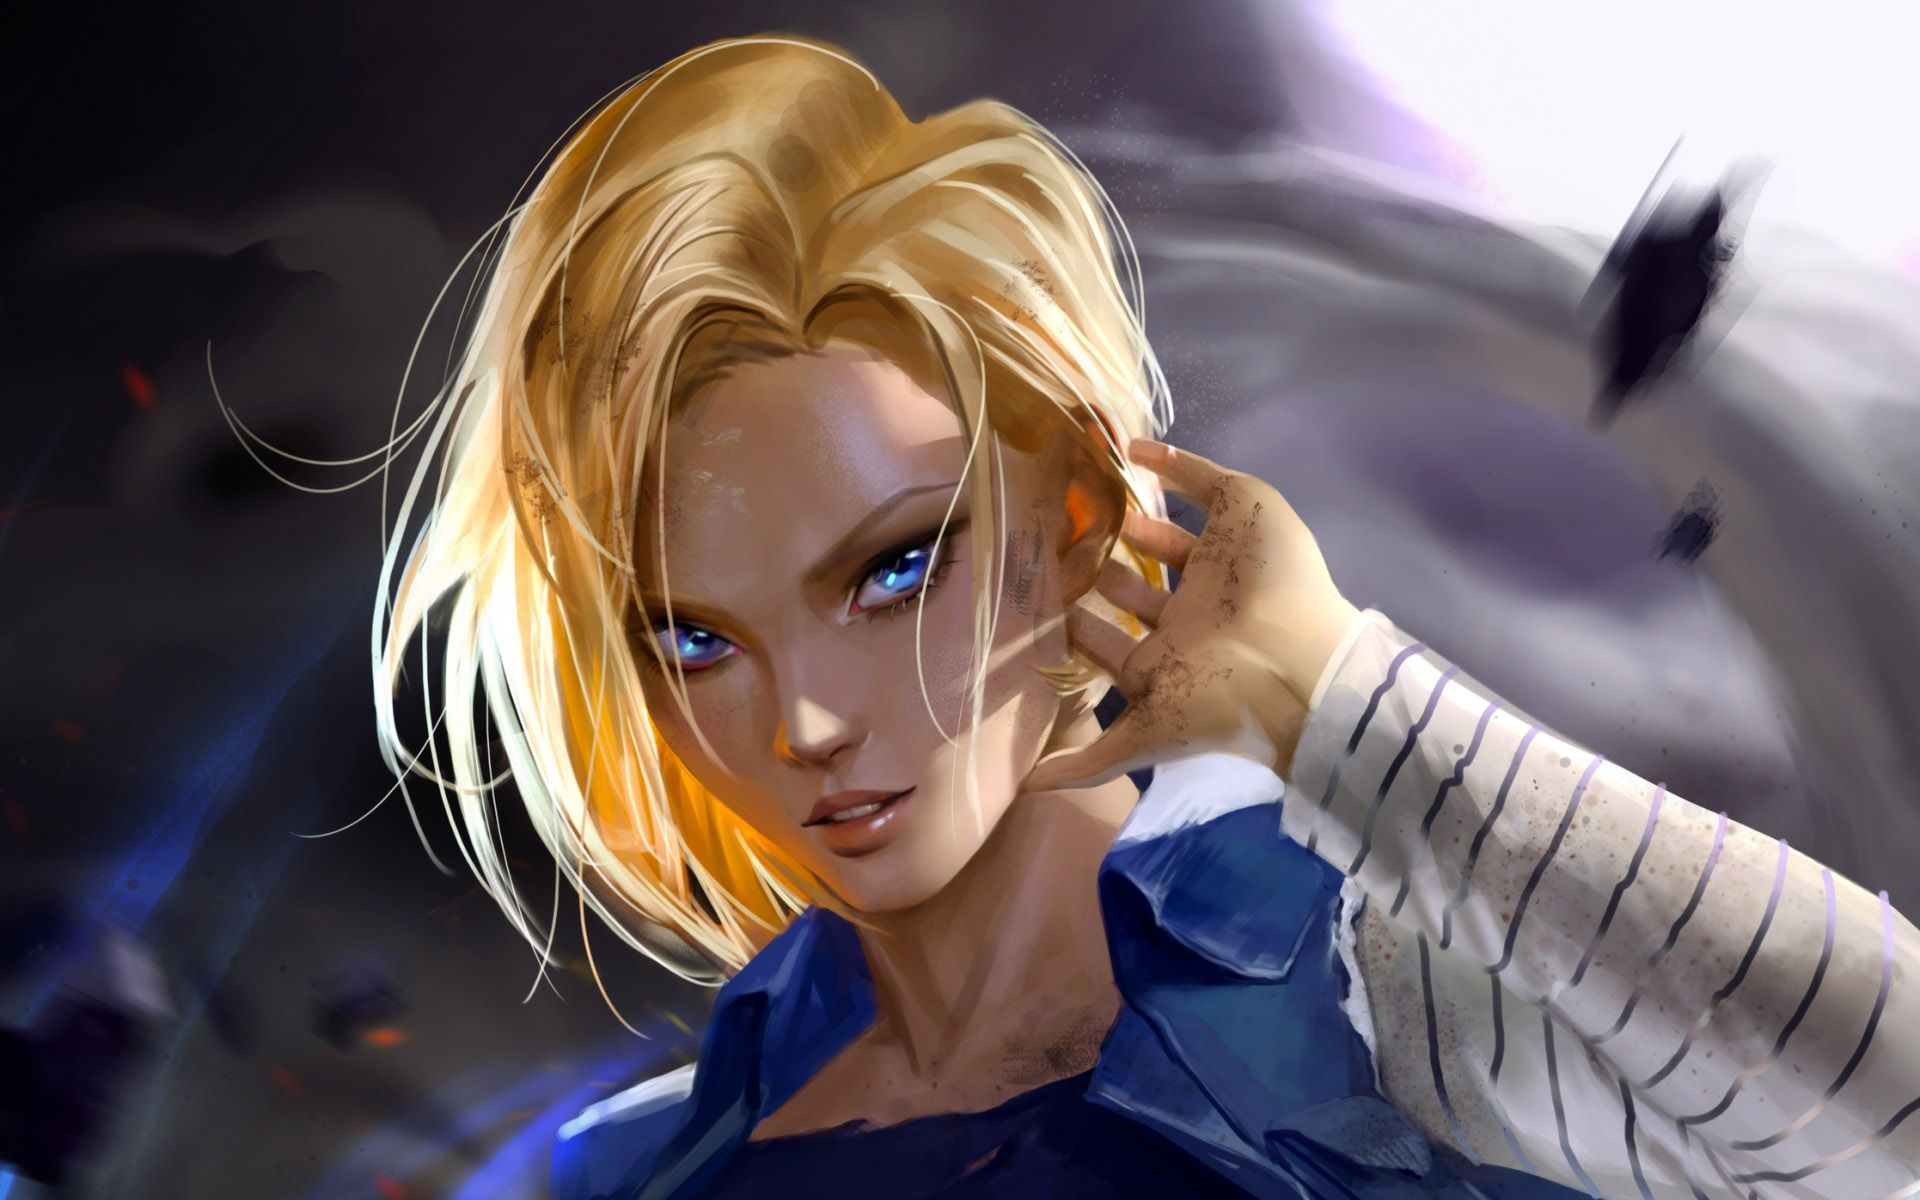 Android 18 HD Wallpapers - Wallpaper Cave